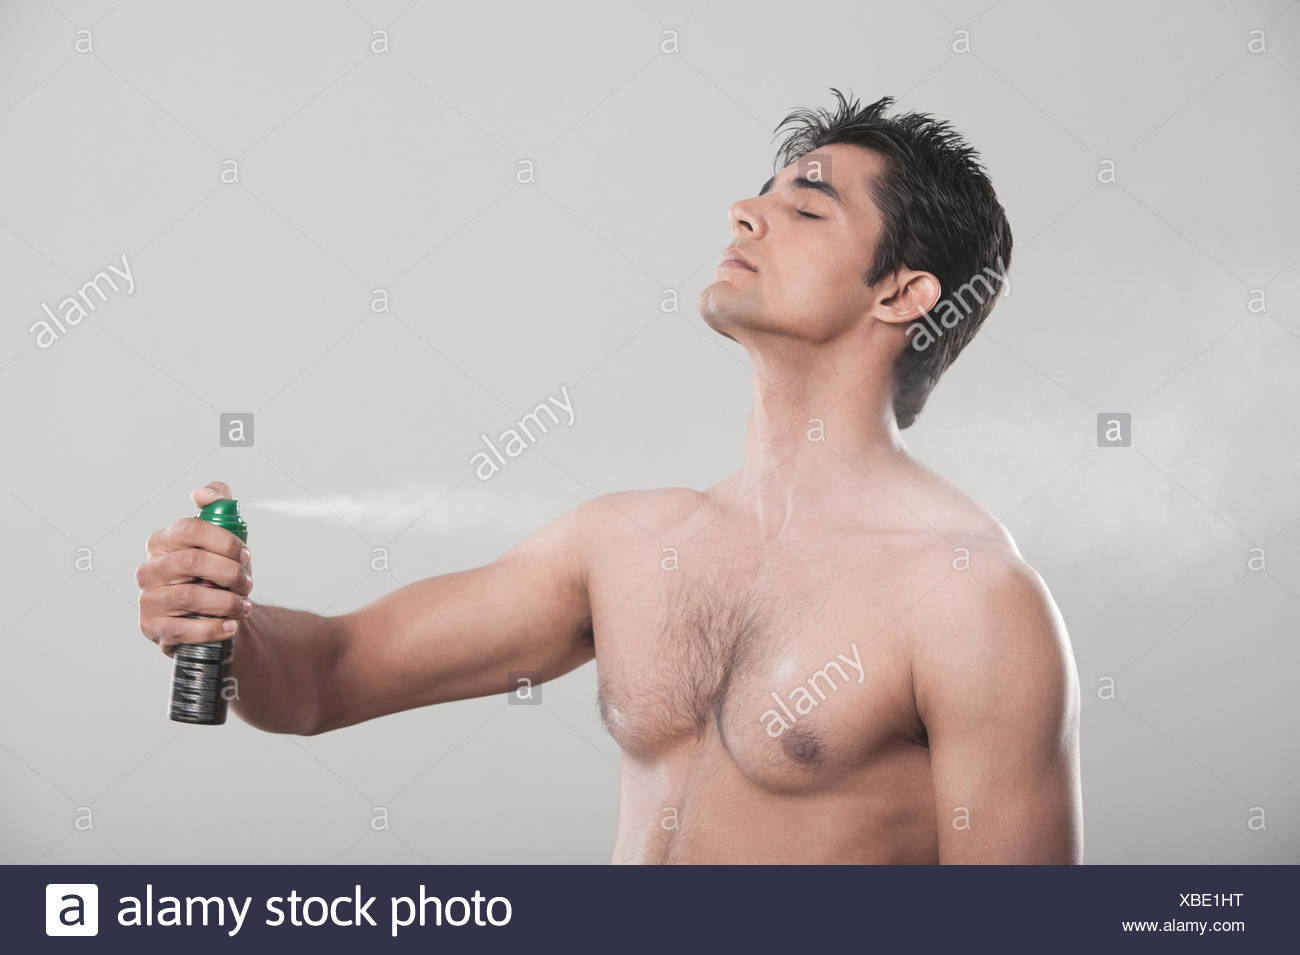 Man applying deodorant over his body - Stock Image